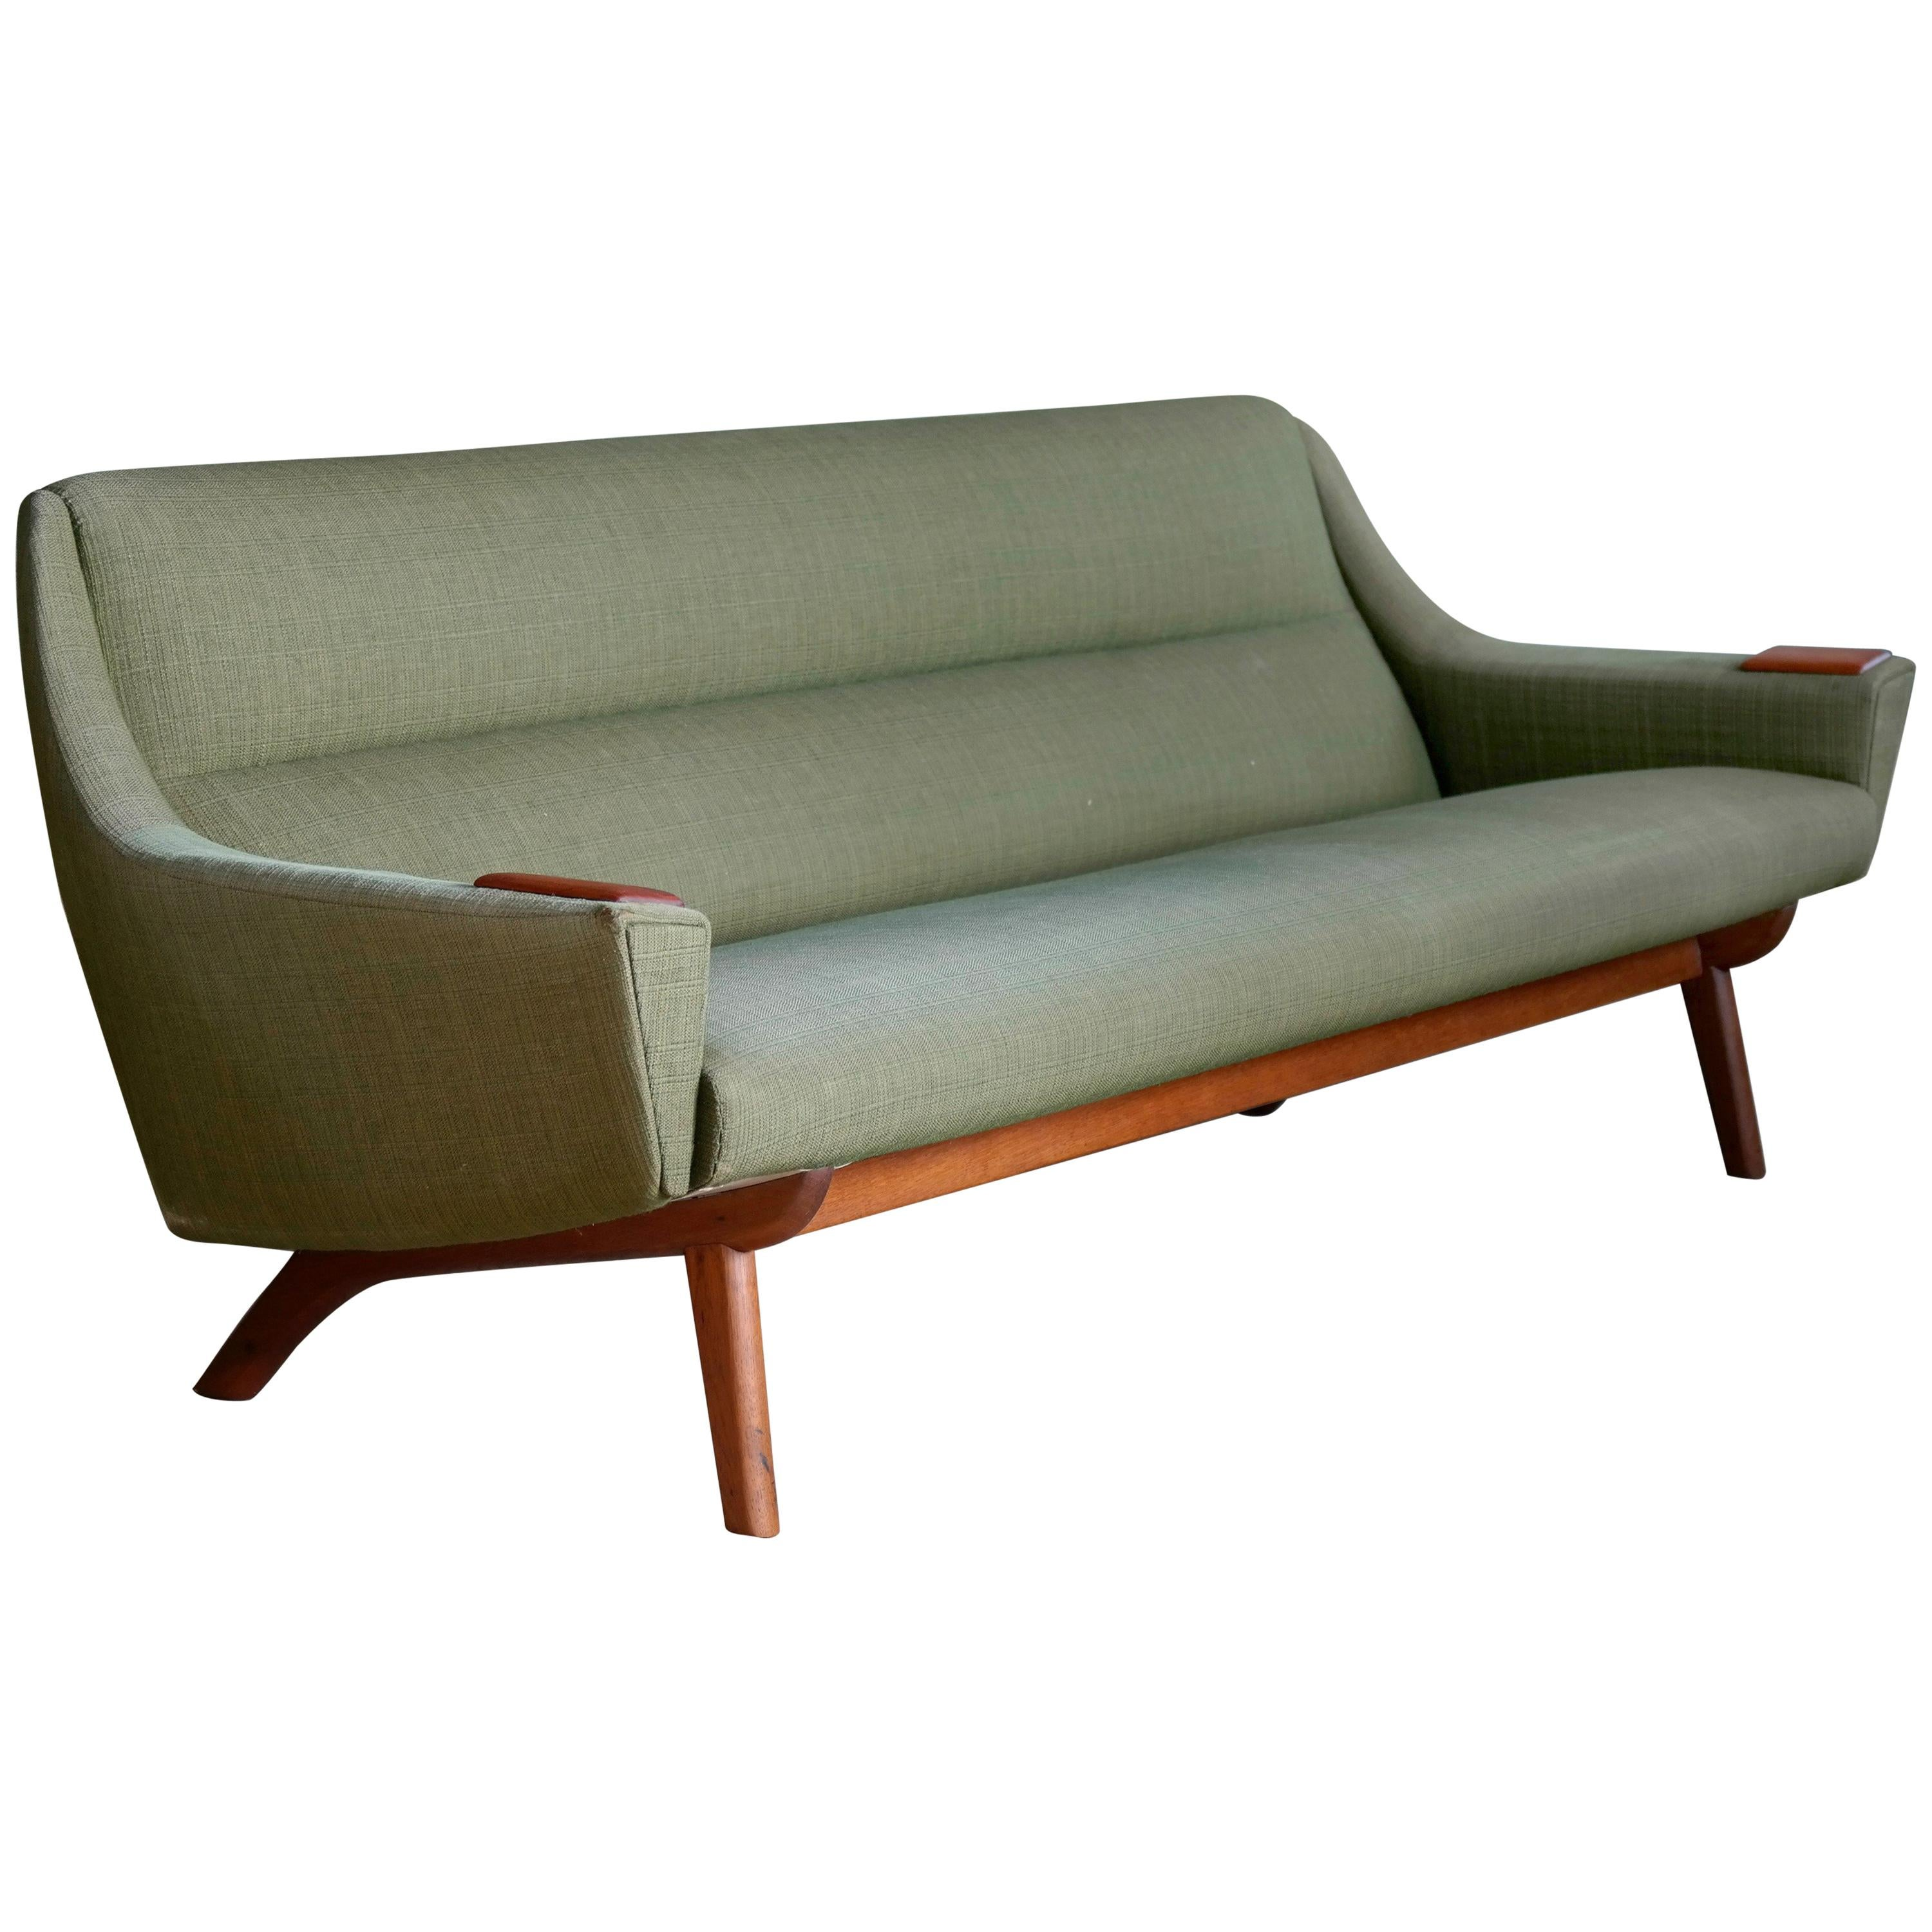 Bon Classic Mid Century Modern Danish 1950s Sofa In Wool And Teak By NM Horsens  At 1stdibs